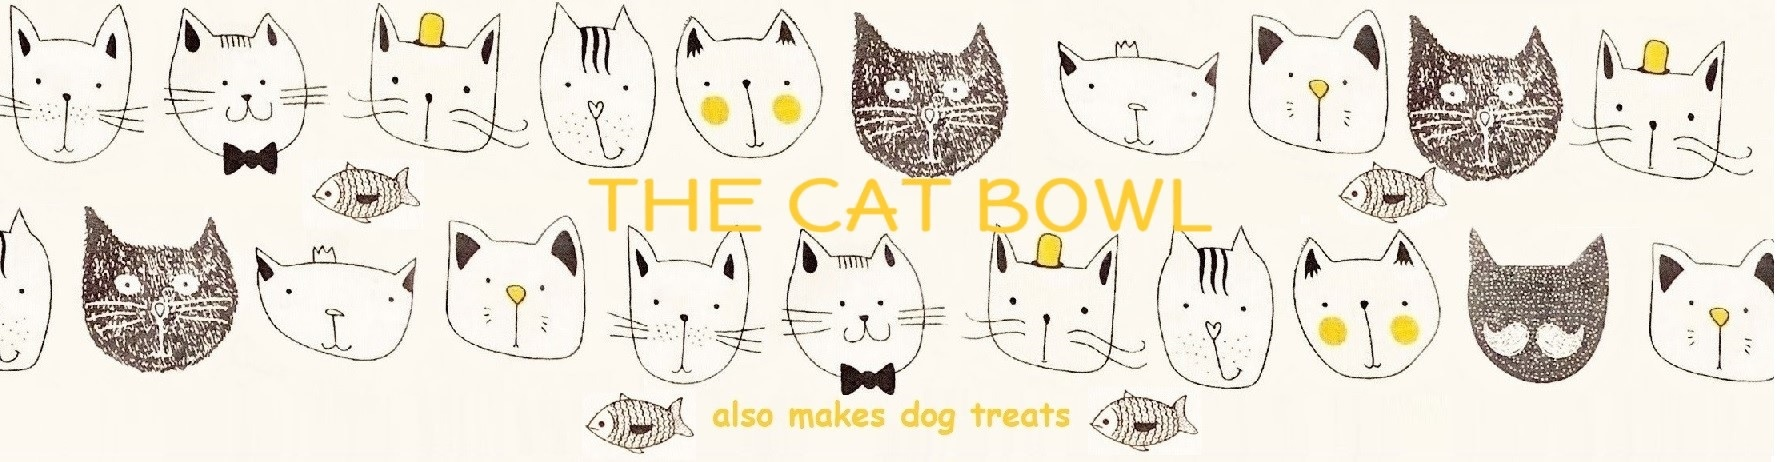 The Cat Bowl banner